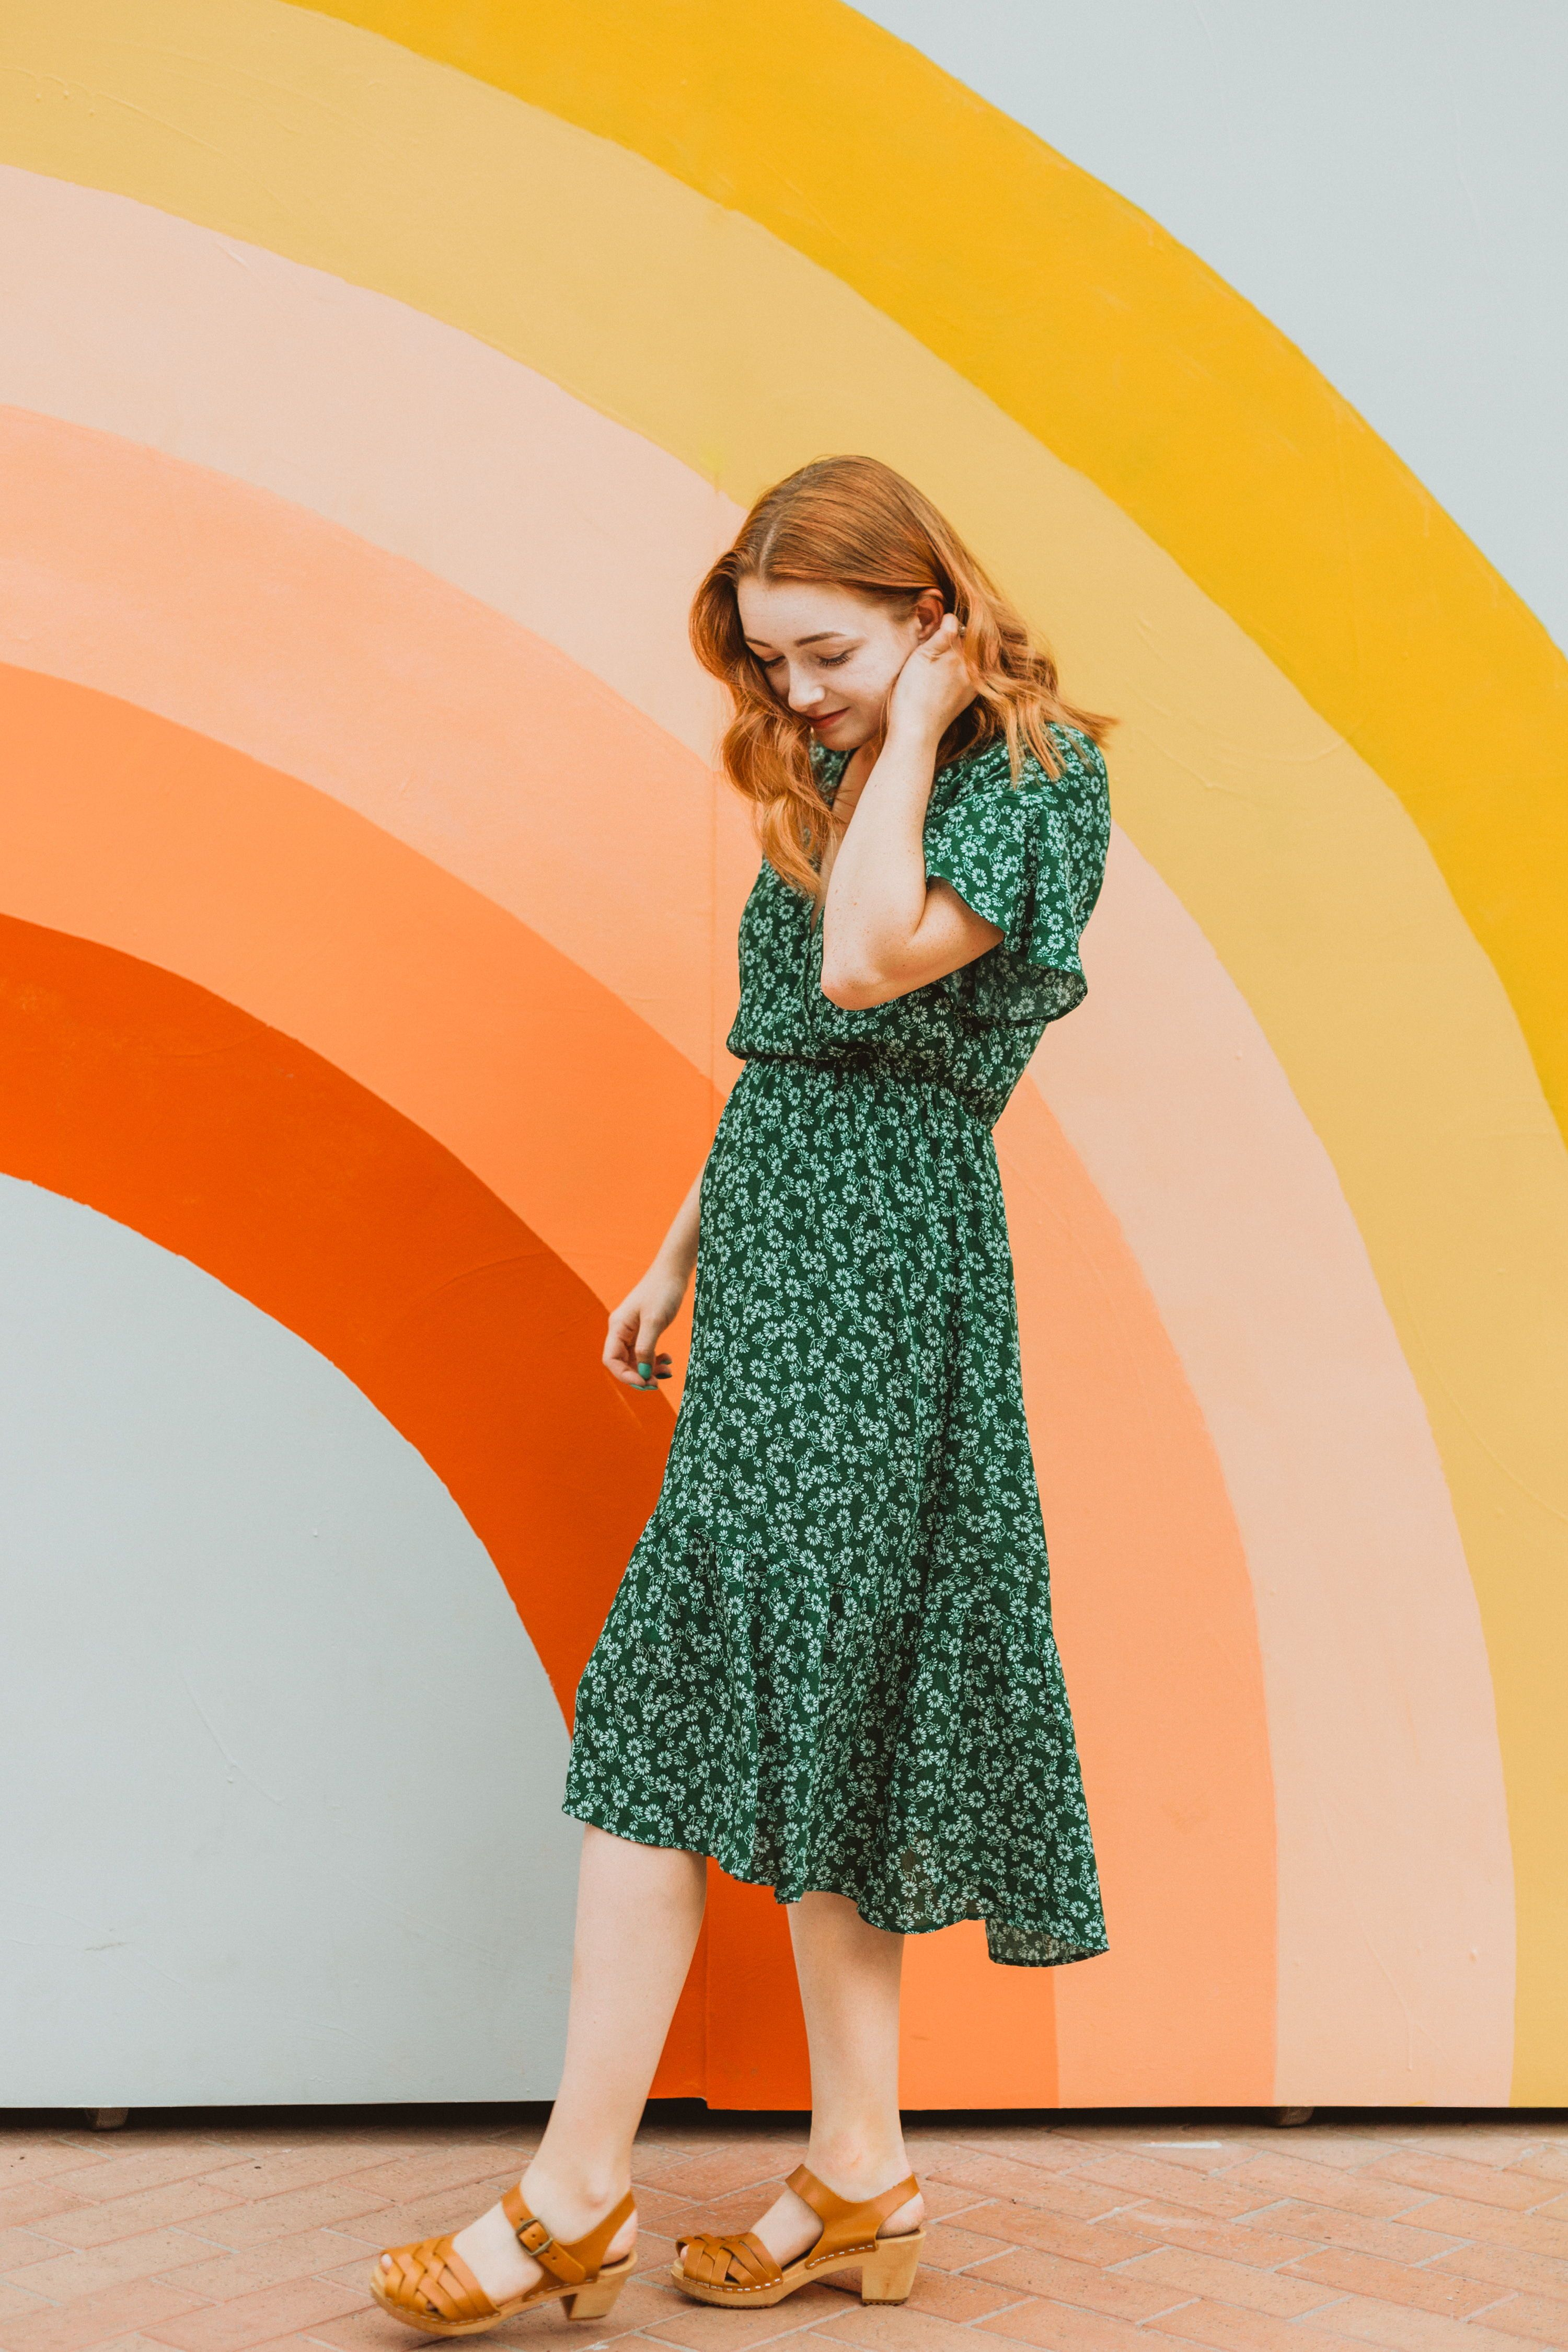 The Bright Side Floral Wrap Dress Is Our Beloved Sable Dress In A New Pattern This Dress Has Been So Popula Modest Summer Dresses Wrap Dress Floral Wrap Dress